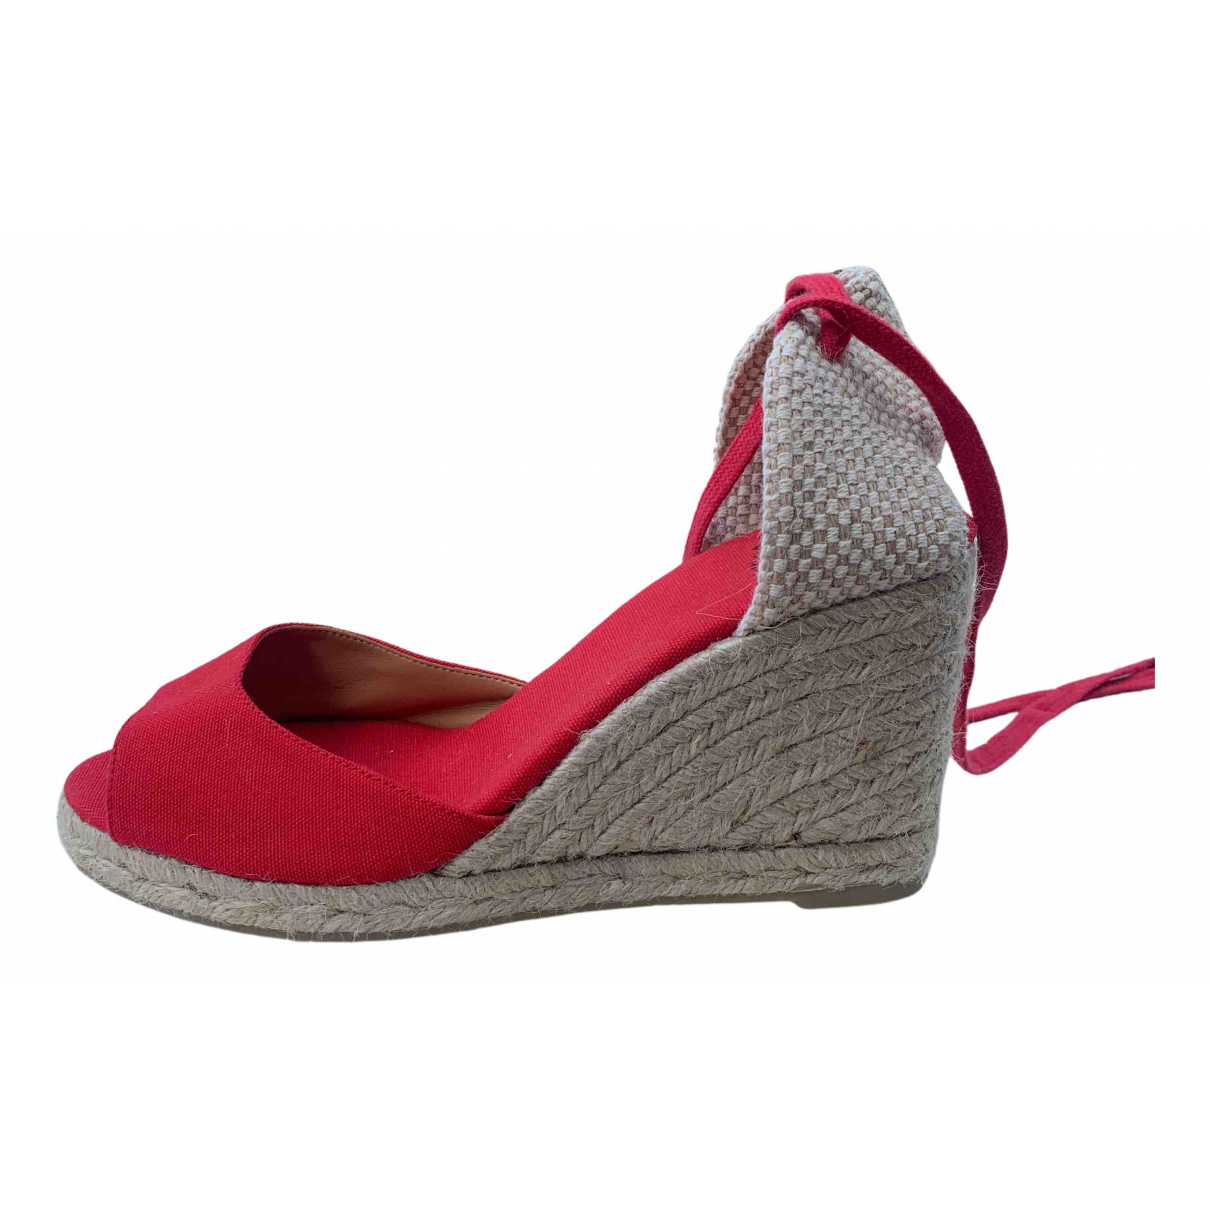 Castaner N Red Cloth Lace ups for Women 39 EU